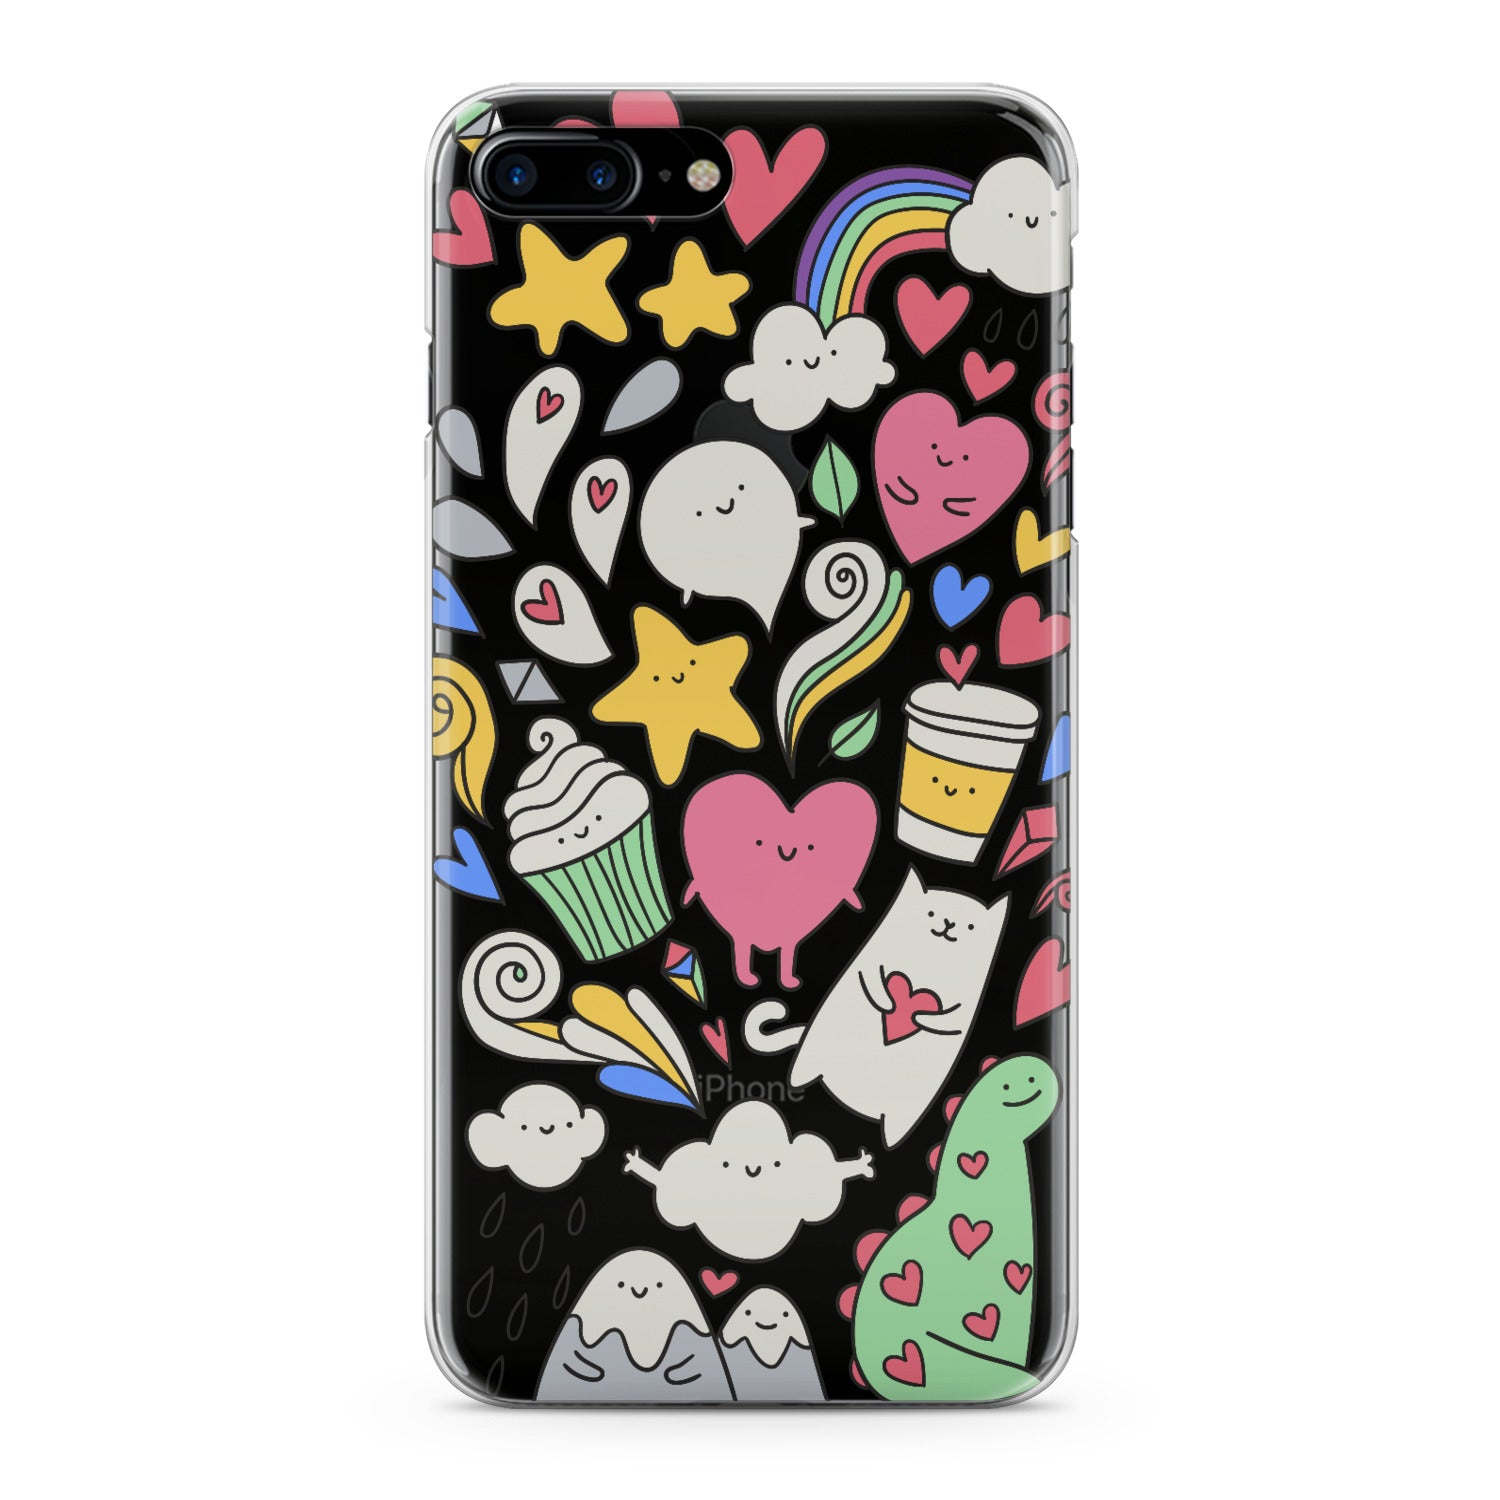 Lex Altern Lovely Stickers Art Phone Case for your iPhone & Android phone.